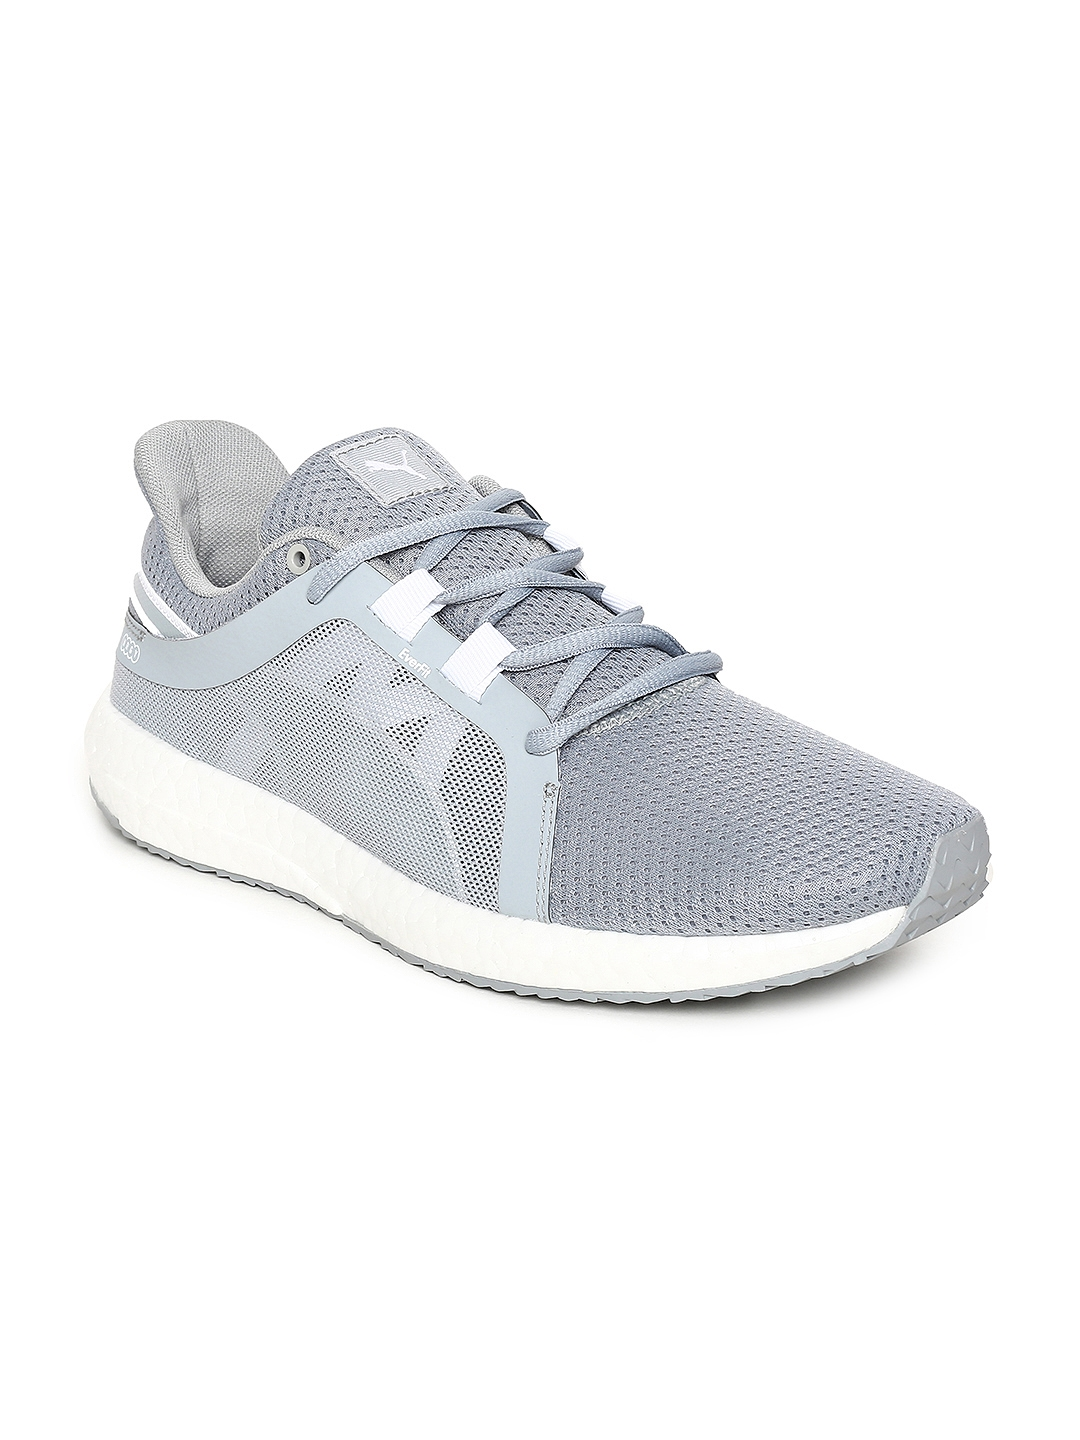 1a3e89ba1f065d Buy Puma Women Grey Mega NRGY Turbo 2 Running Shoes - Sports Shoes ...